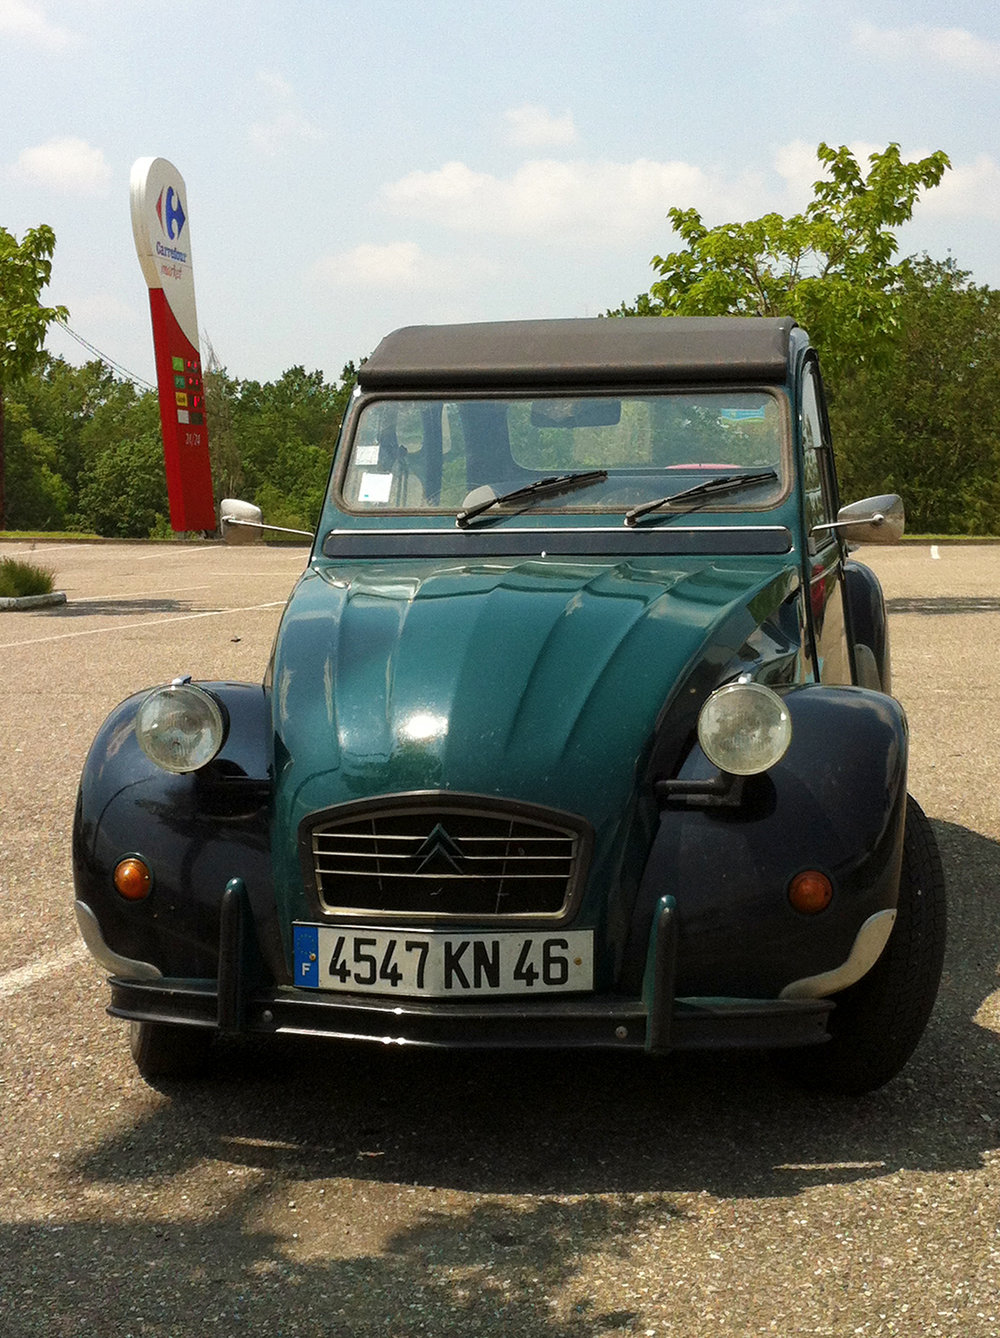 "Over the years, I've noticed a one-of-a-kind 2 CV often parked at Carrefour or Intermarché. The car is mostly dark green but has gone through several paint ""upgrades:"" on a photo I took in 2014, the front fender on the passenger side was cream instead of black."